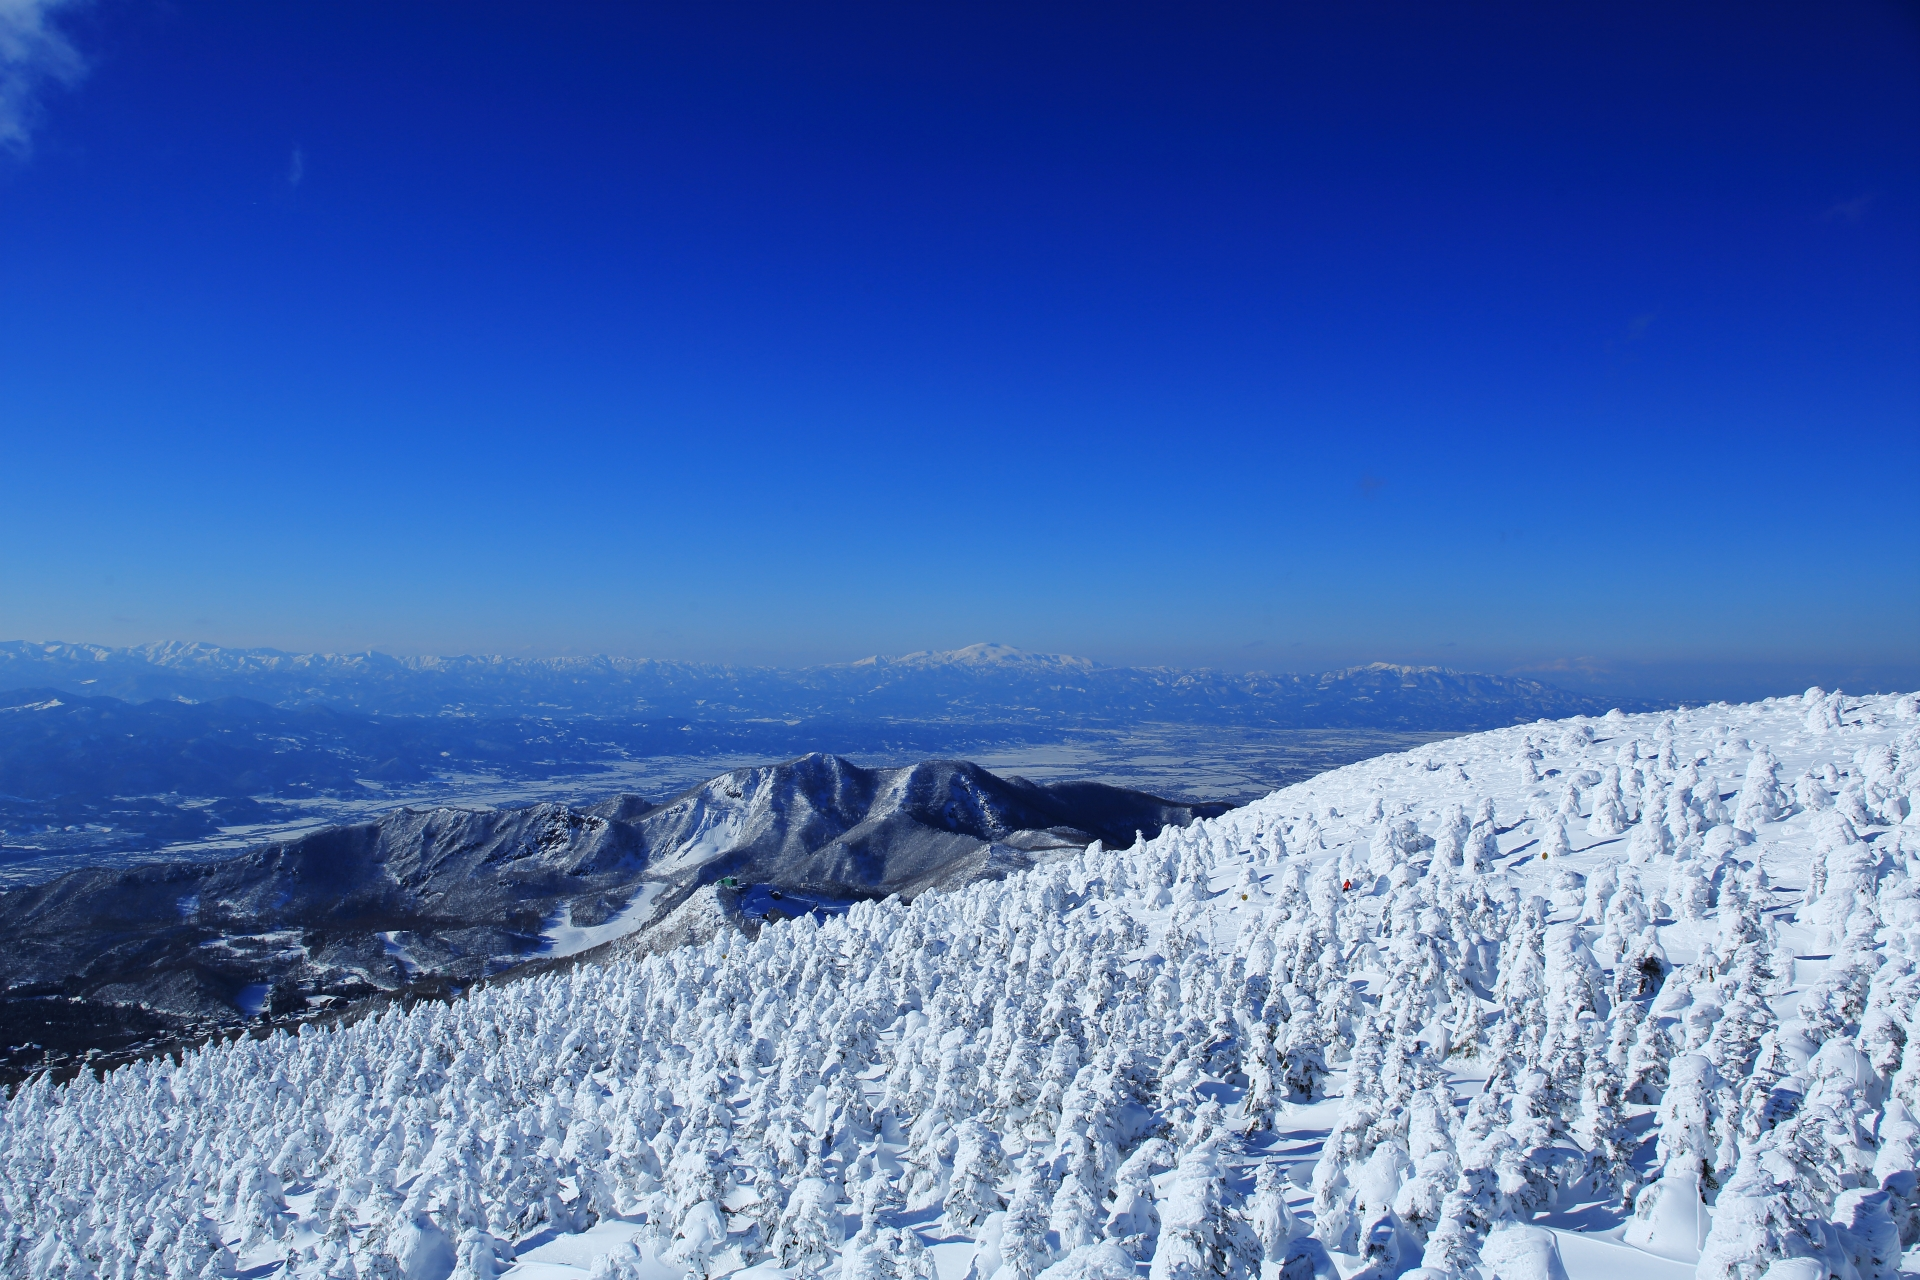 Yamagata : 10 Best Things to Do in 2021